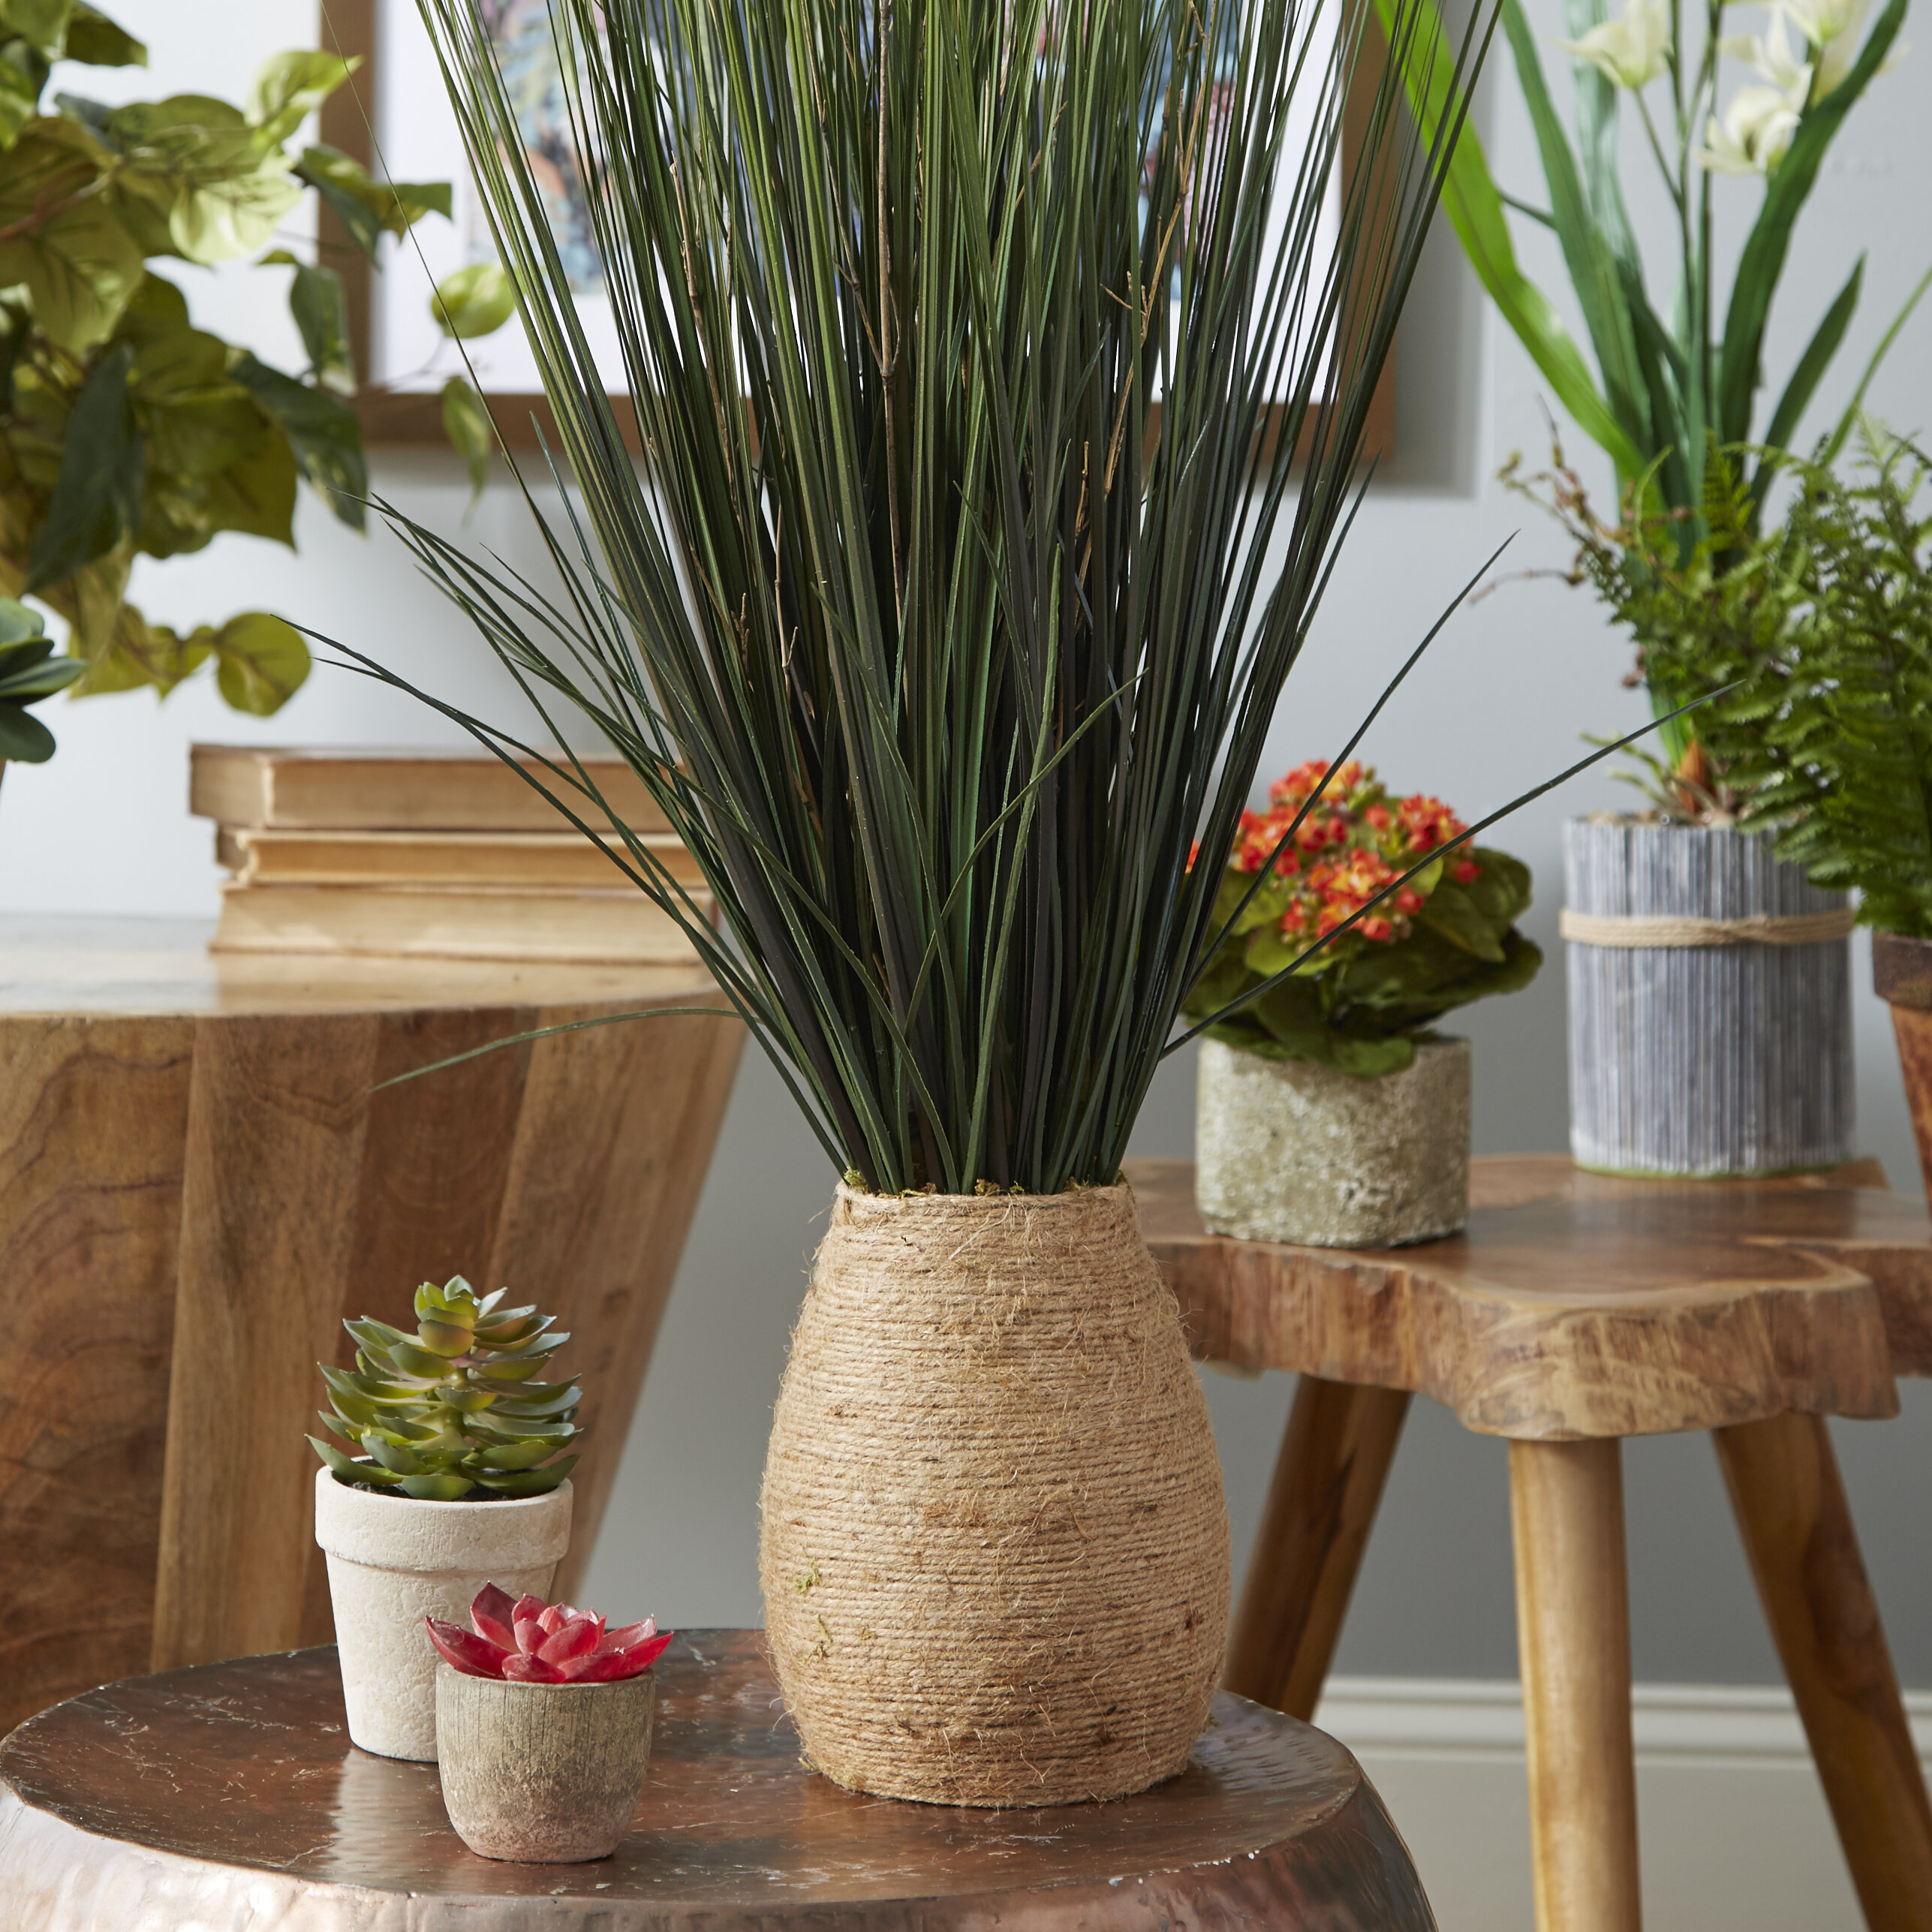 Grass With Twigs In Tapered Hemp Rope Pot